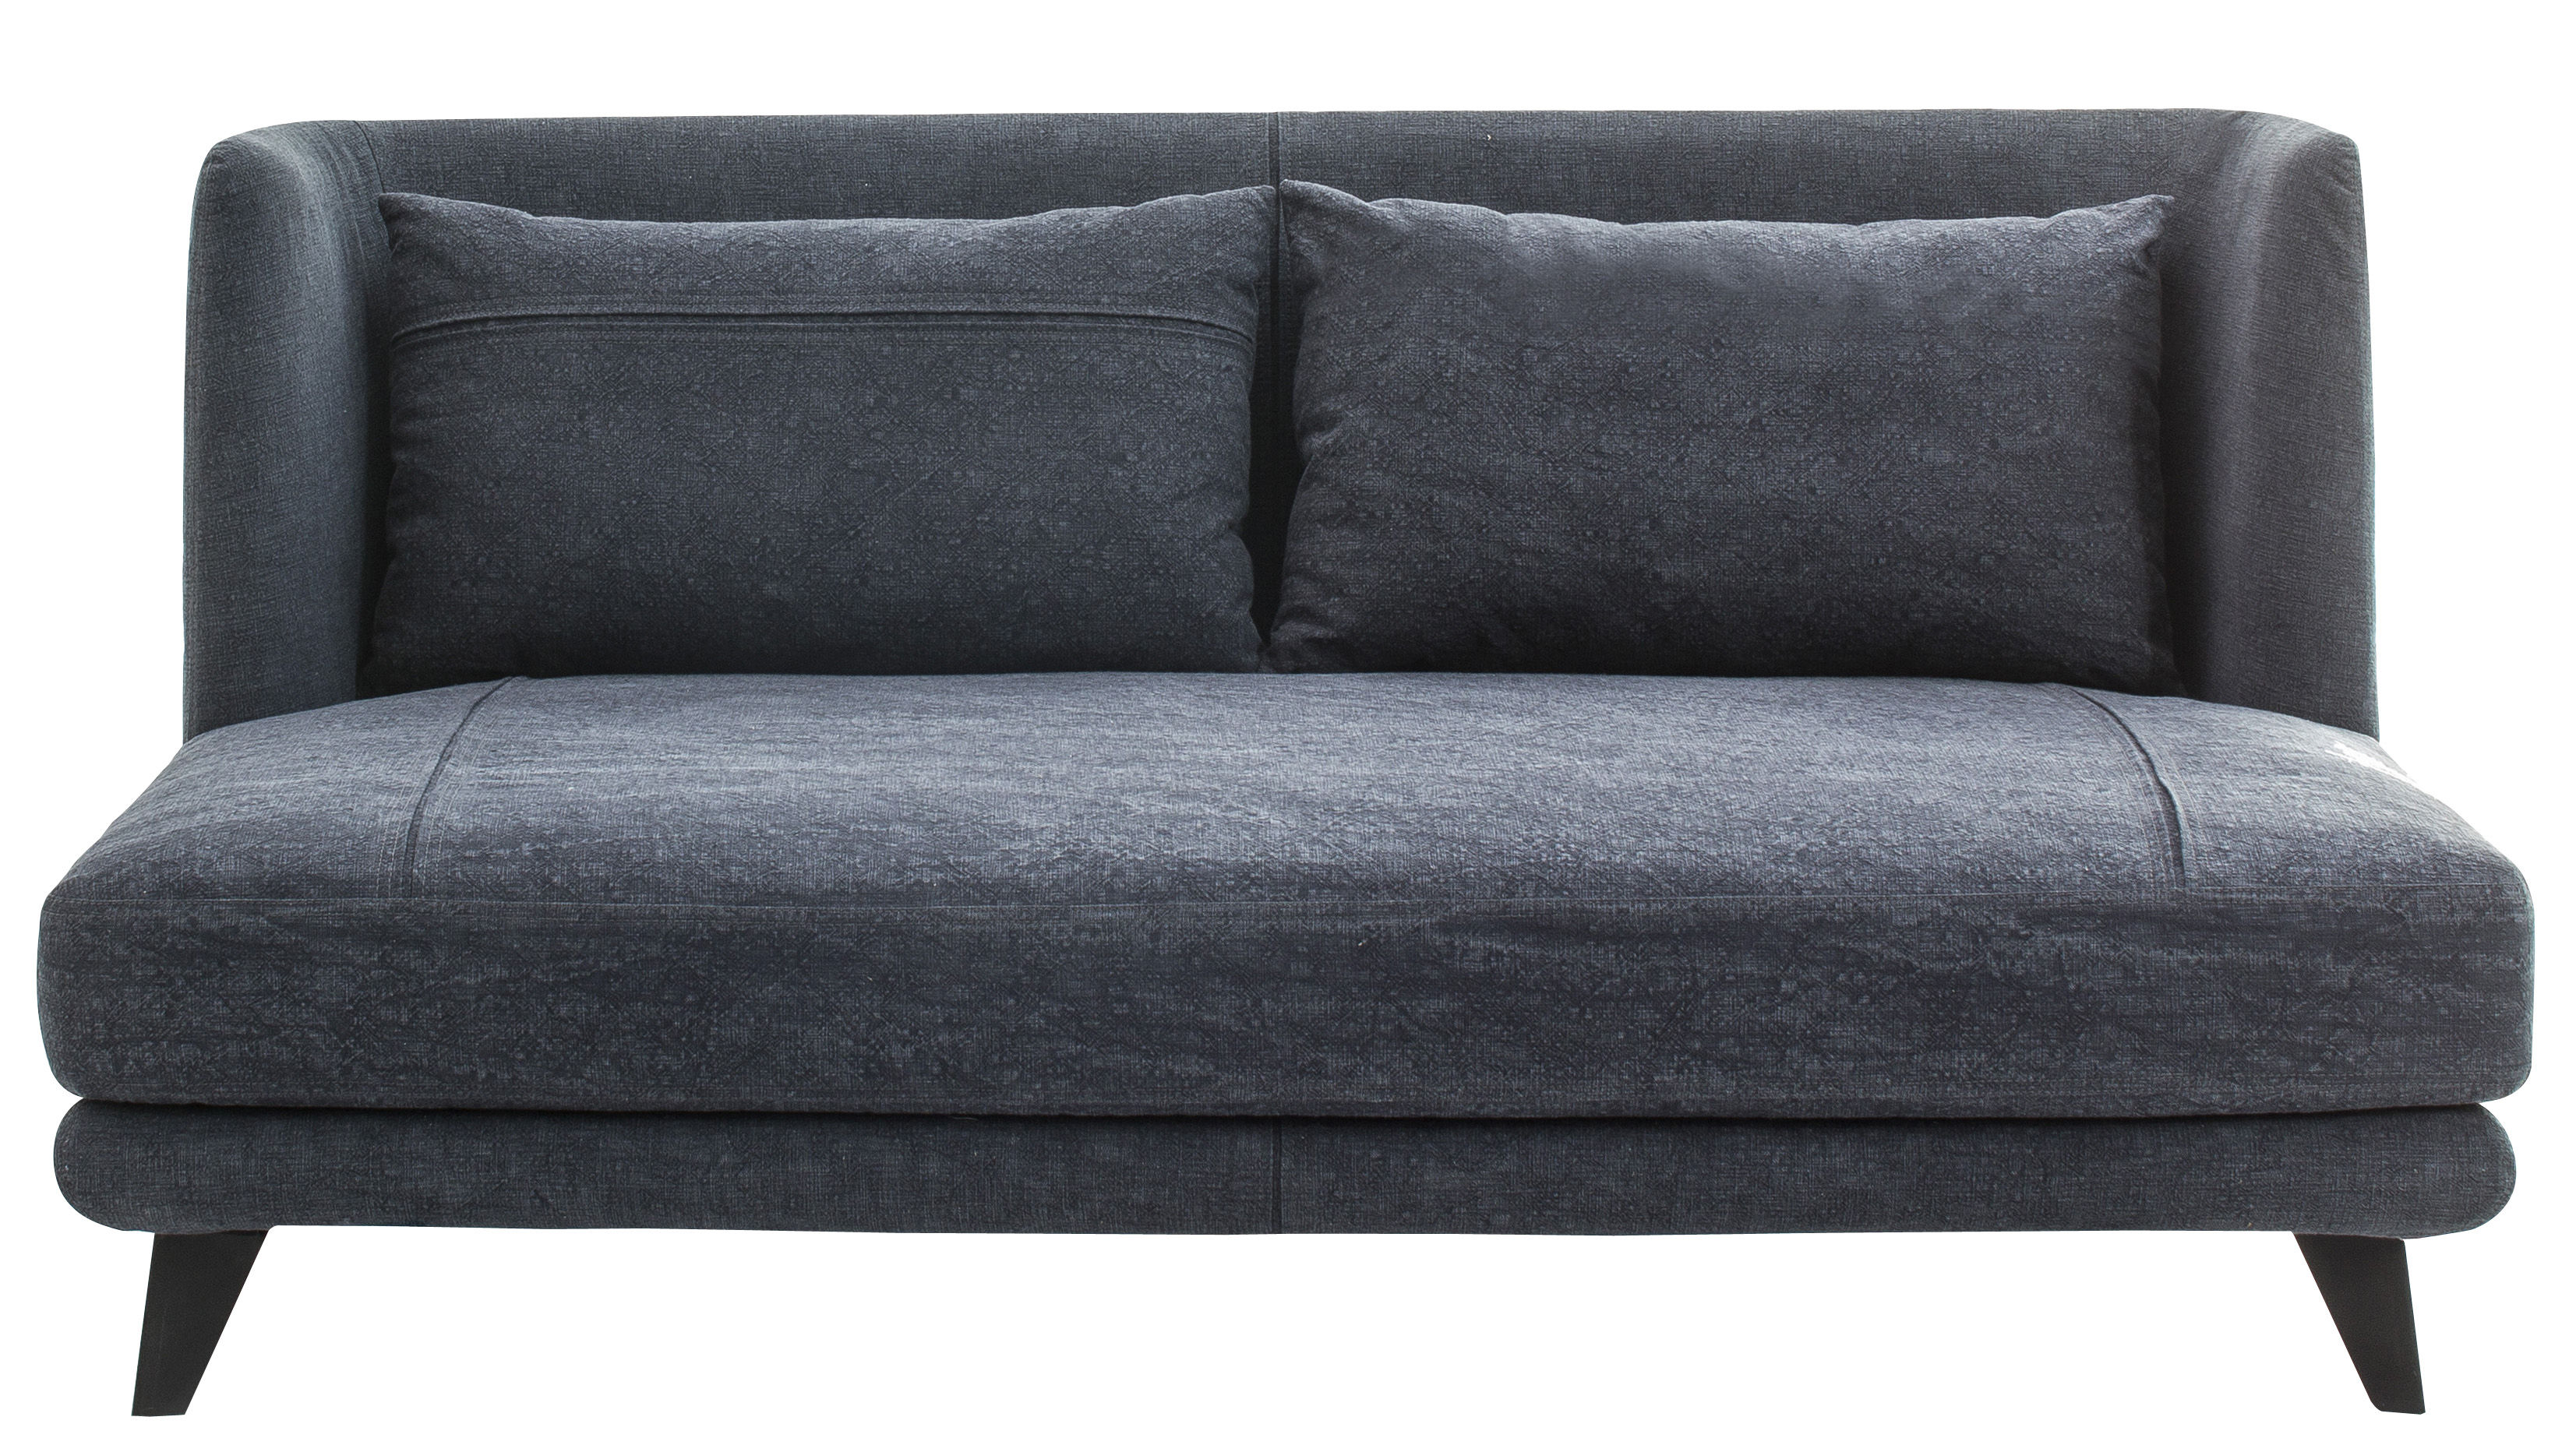 canap droit gimme more l 160 cm 2 places bleu jean fonc diesel with moroso. Black Bedroom Furniture Sets. Home Design Ideas